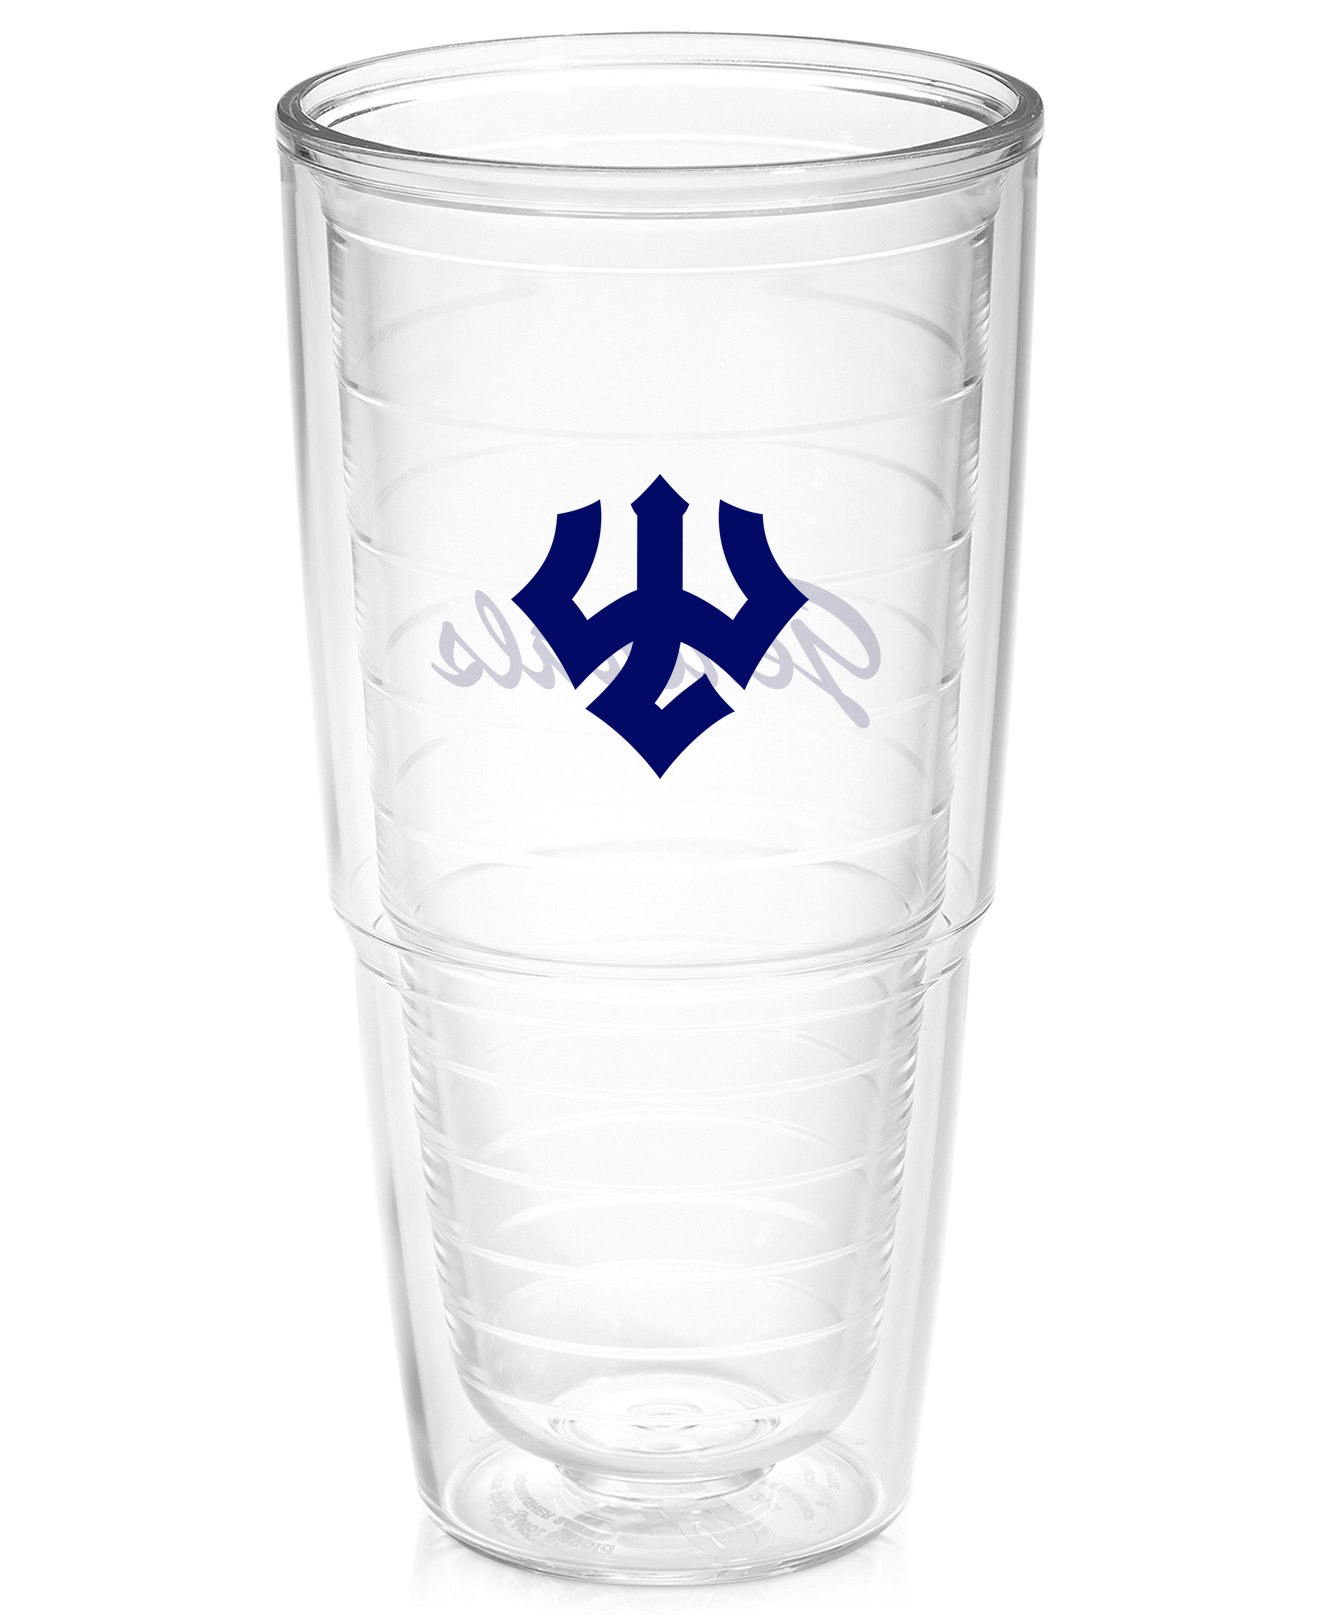 Image For Tervis Tumbler with Trident and Generals 24 oz